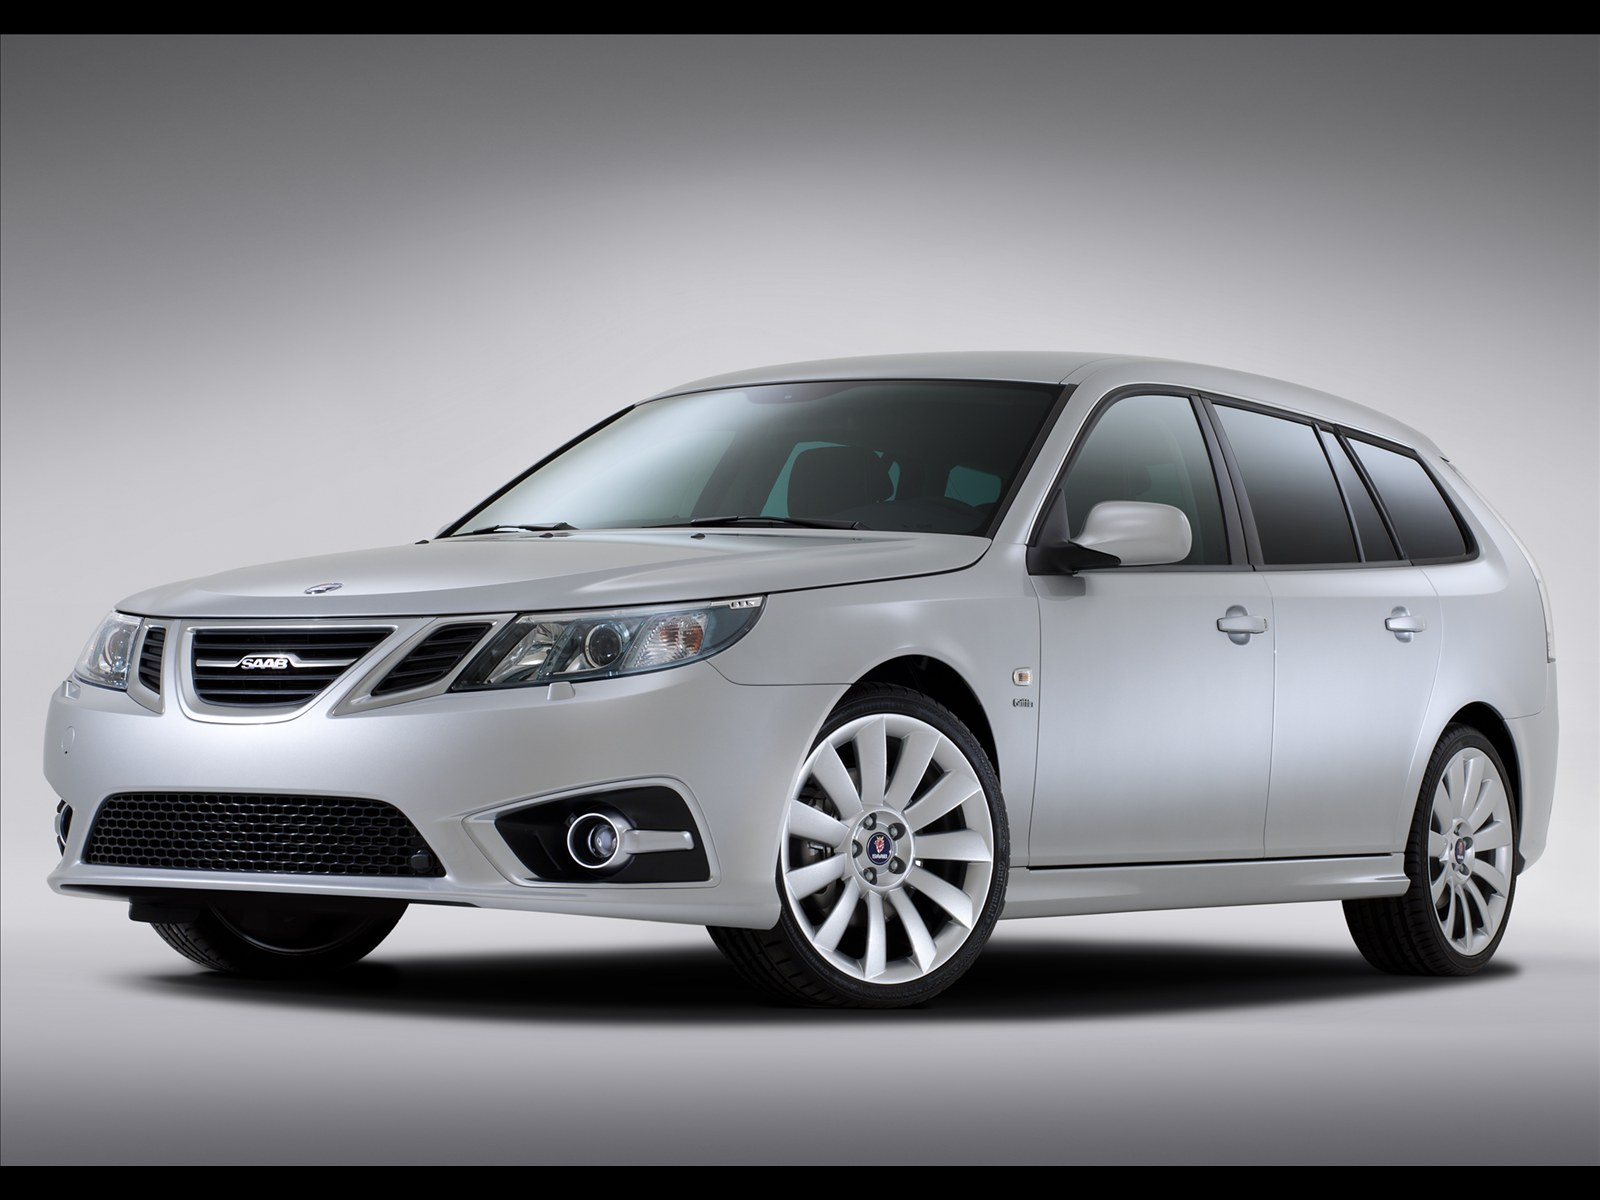 all types of autos saab 9 3 sportcombi aero griffin 2011. Black Bedroom Furniture Sets. Home Design Ideas